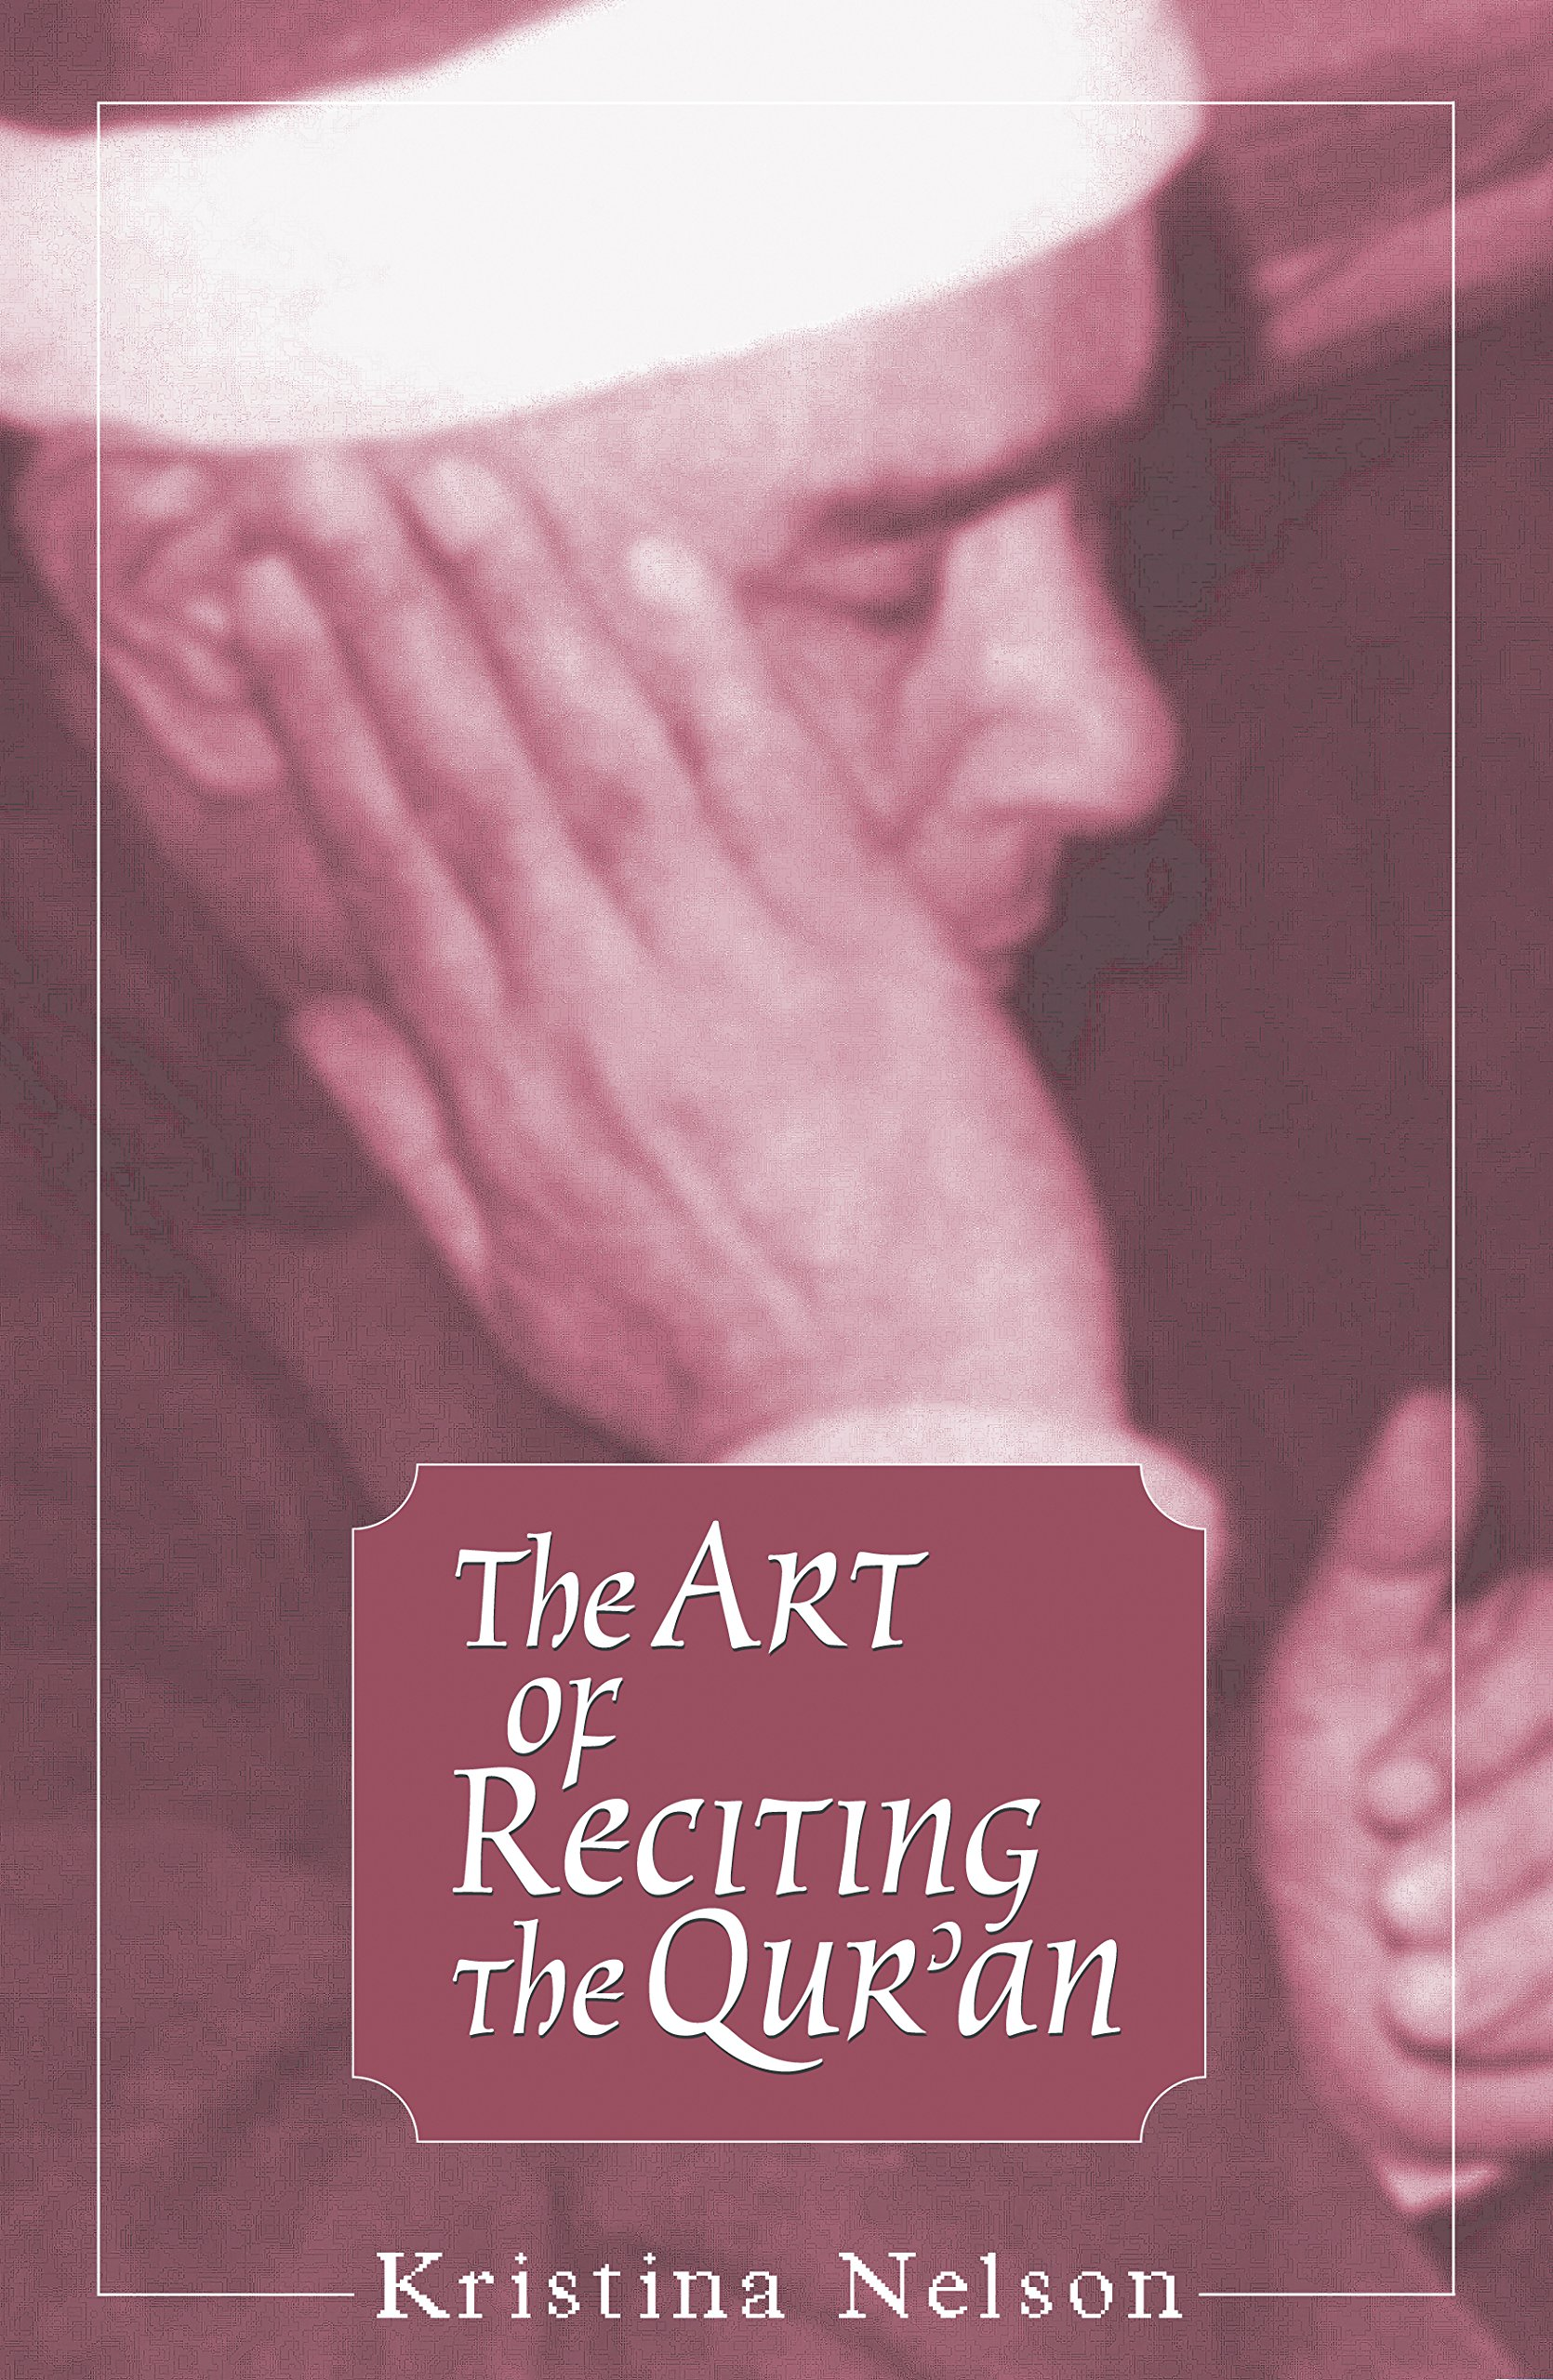 The Art of Reciting the Qur'an: Kristina Nelson